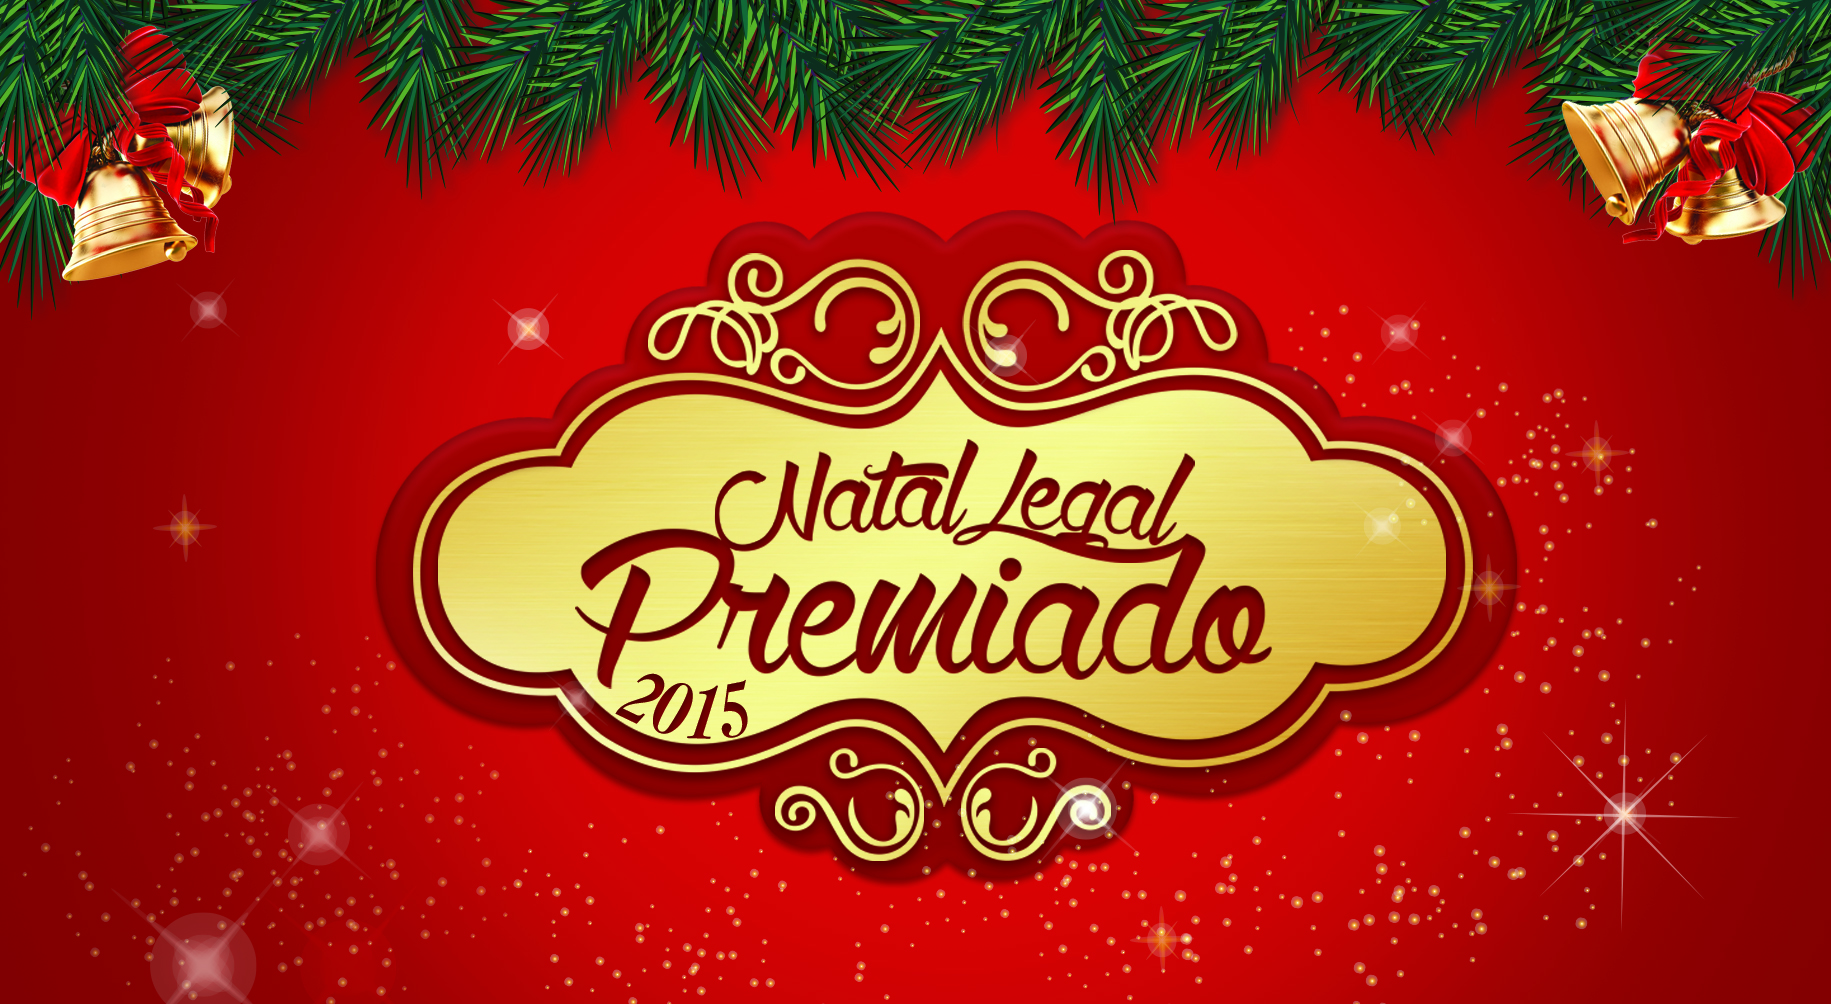 Natal Legal Presidente Kennedy